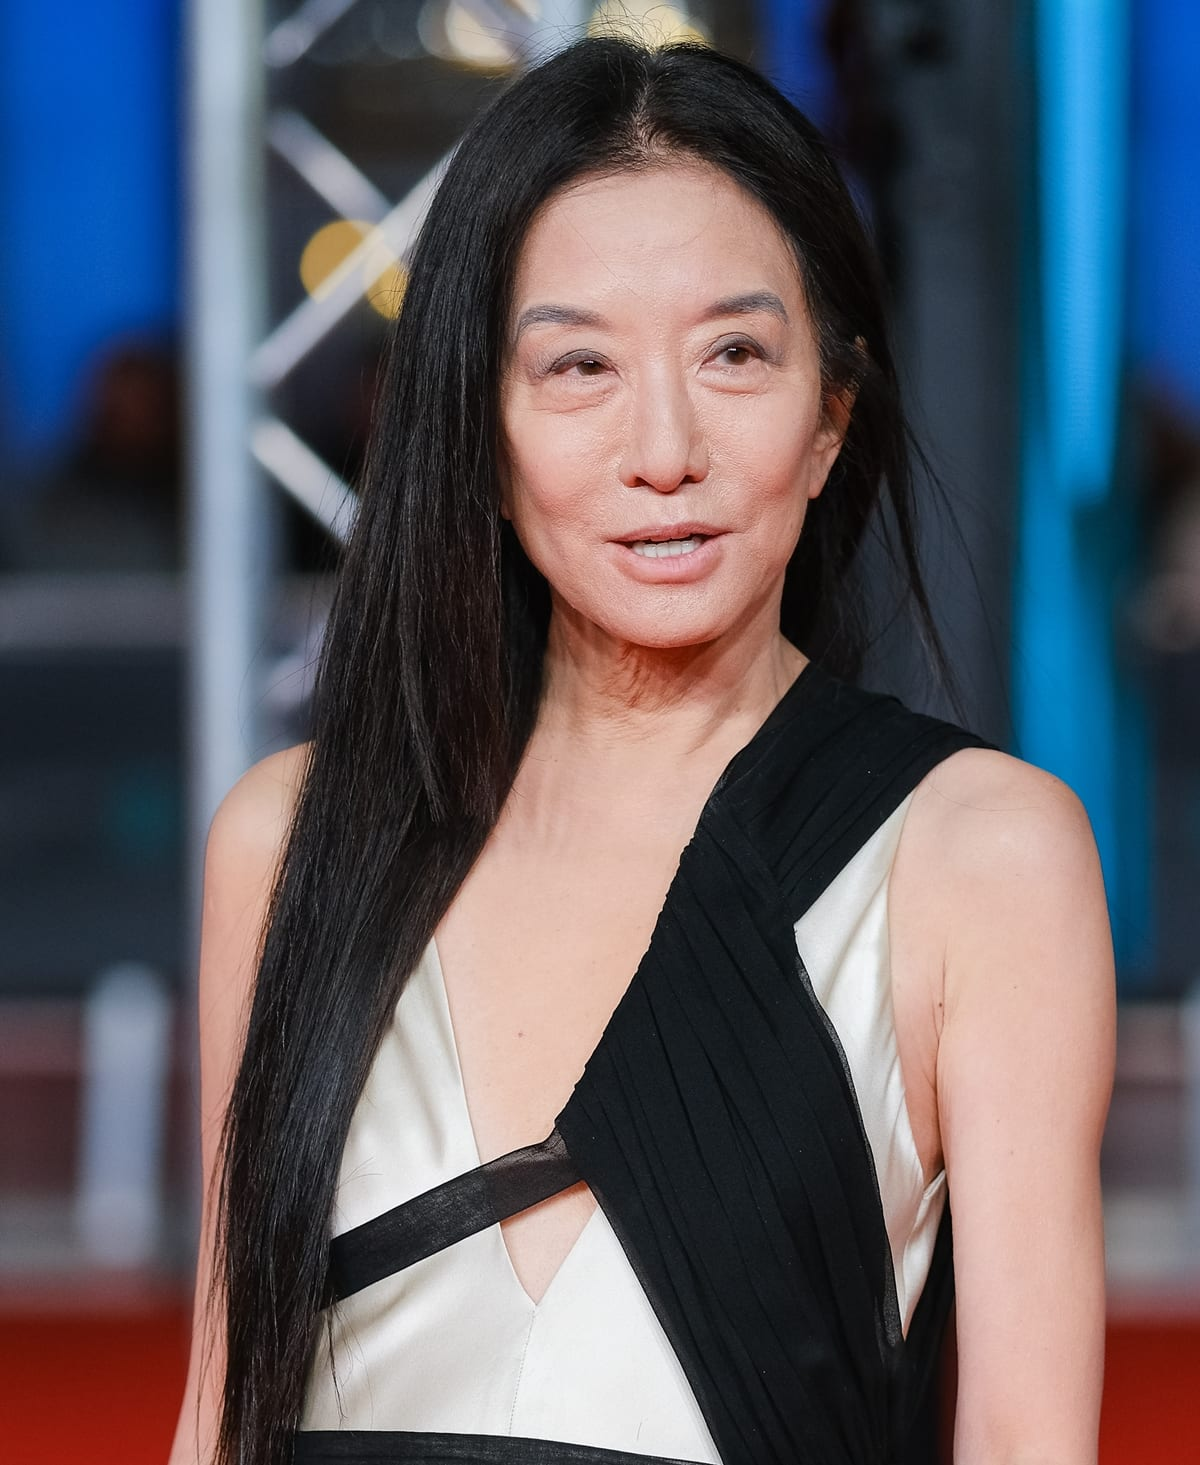 Vera Ellen Wang is an American fashion designer who was a senior fashion editor at Vogue for 15 years